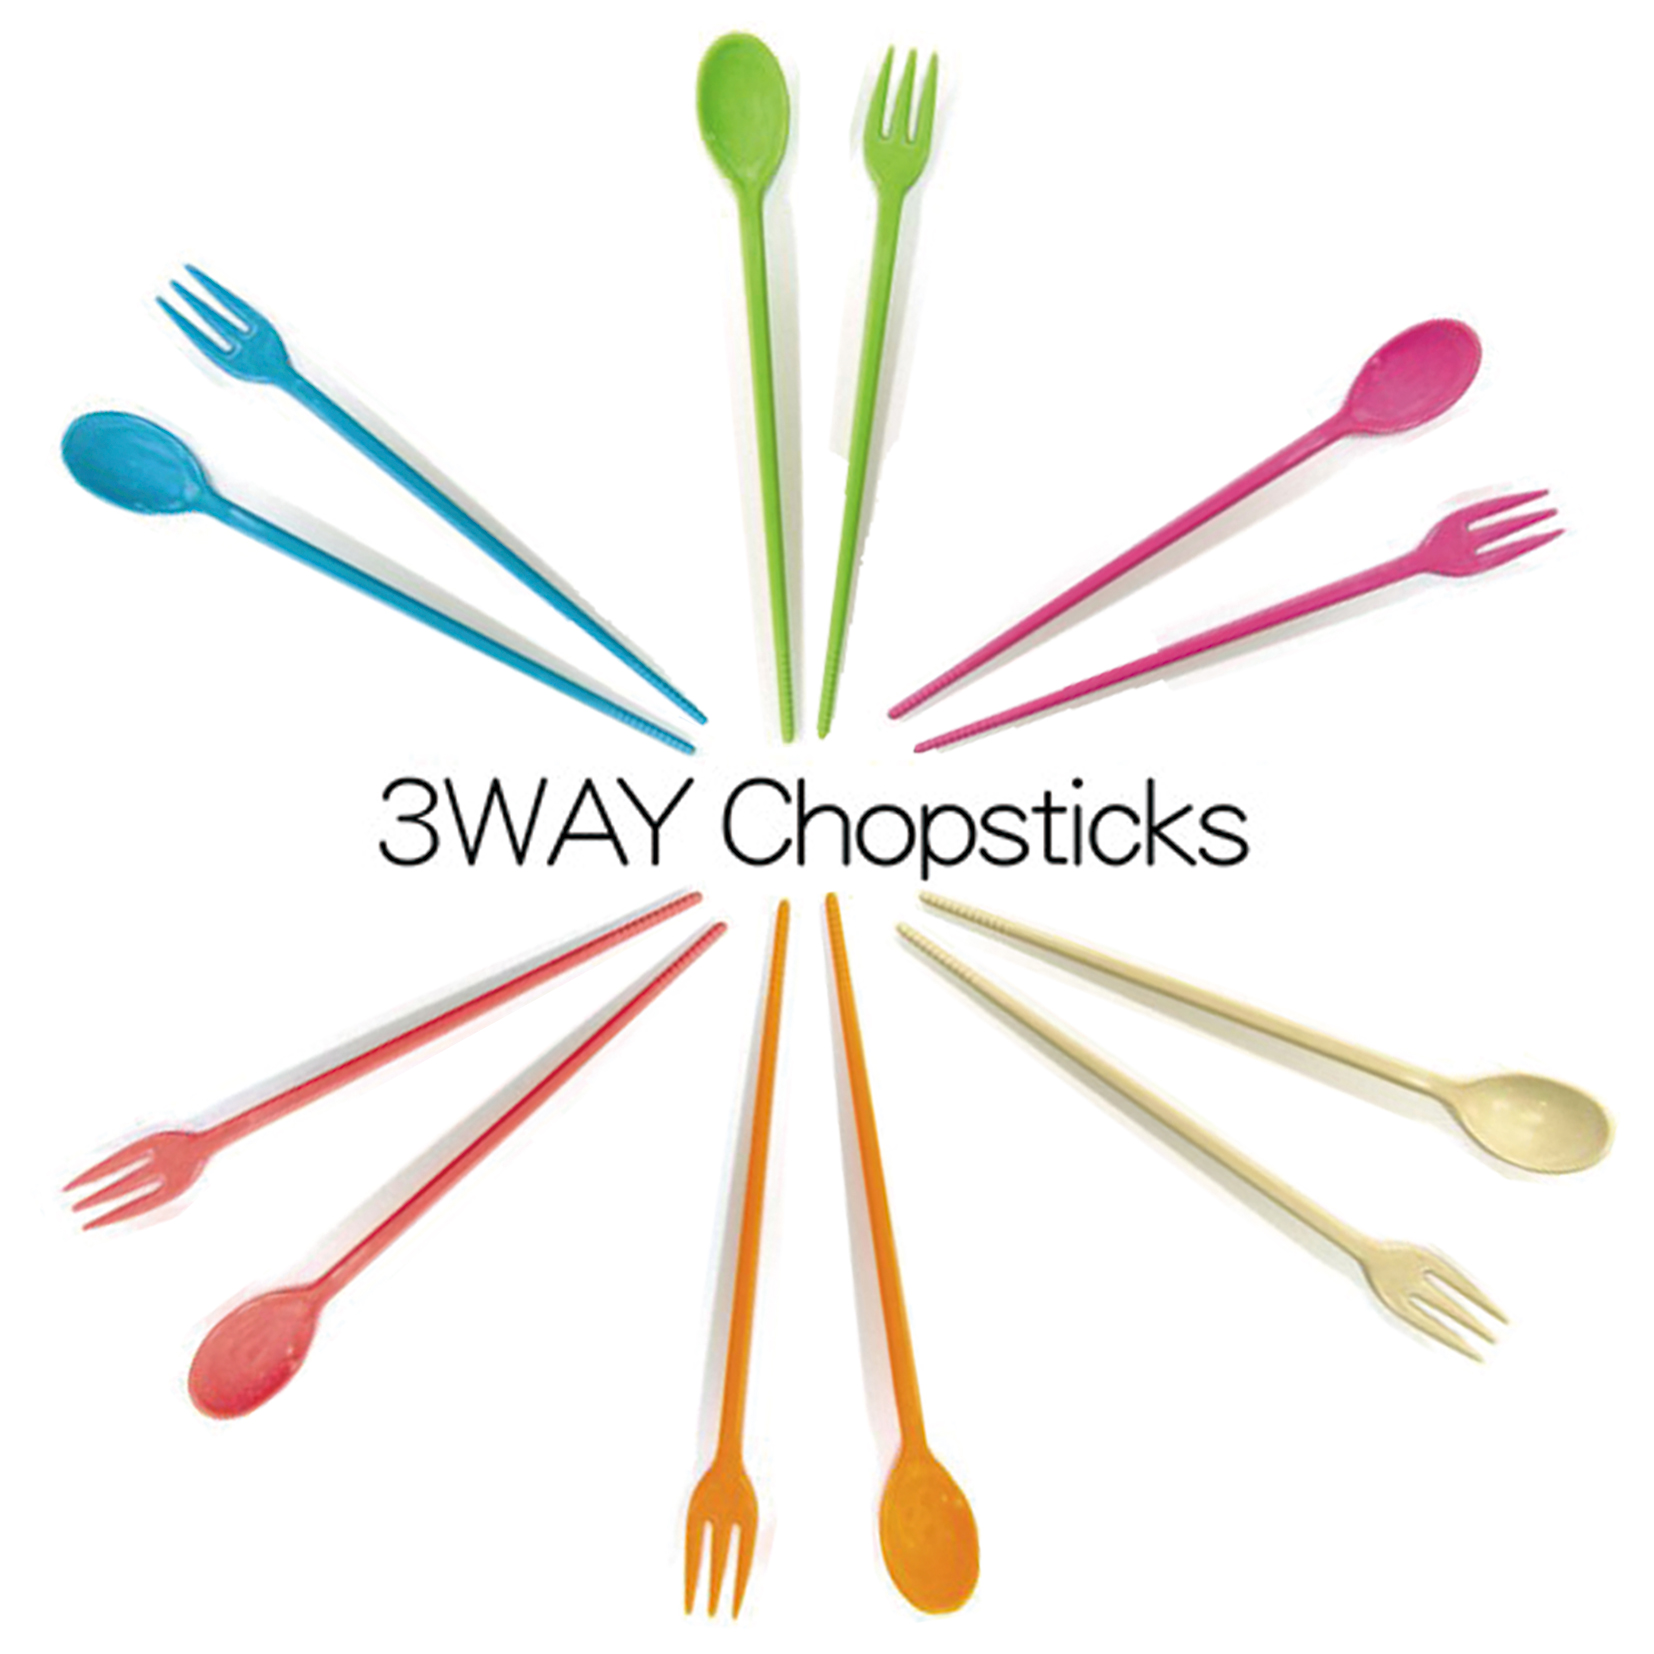 3WAY Chopsticks